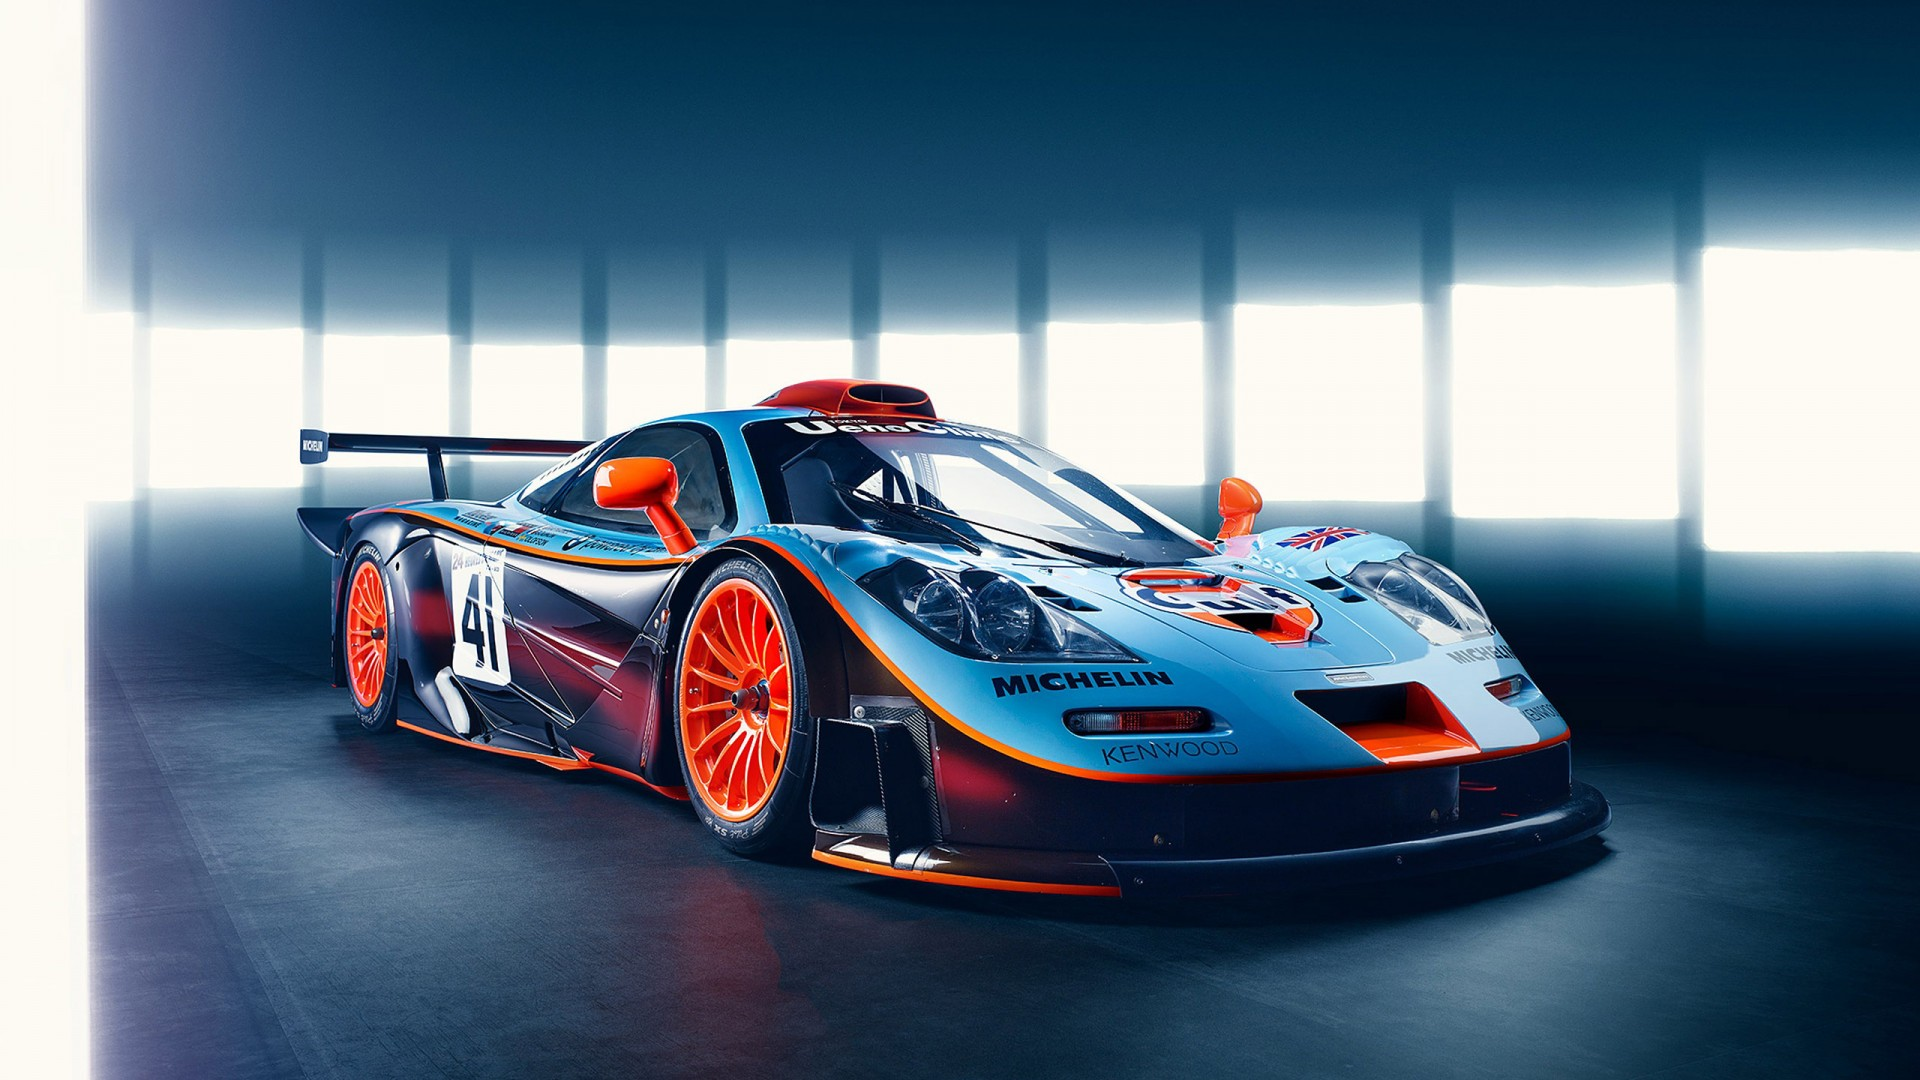 McLaren F1 GTR Longtail Wallpaper HD Car Wallpapers ID